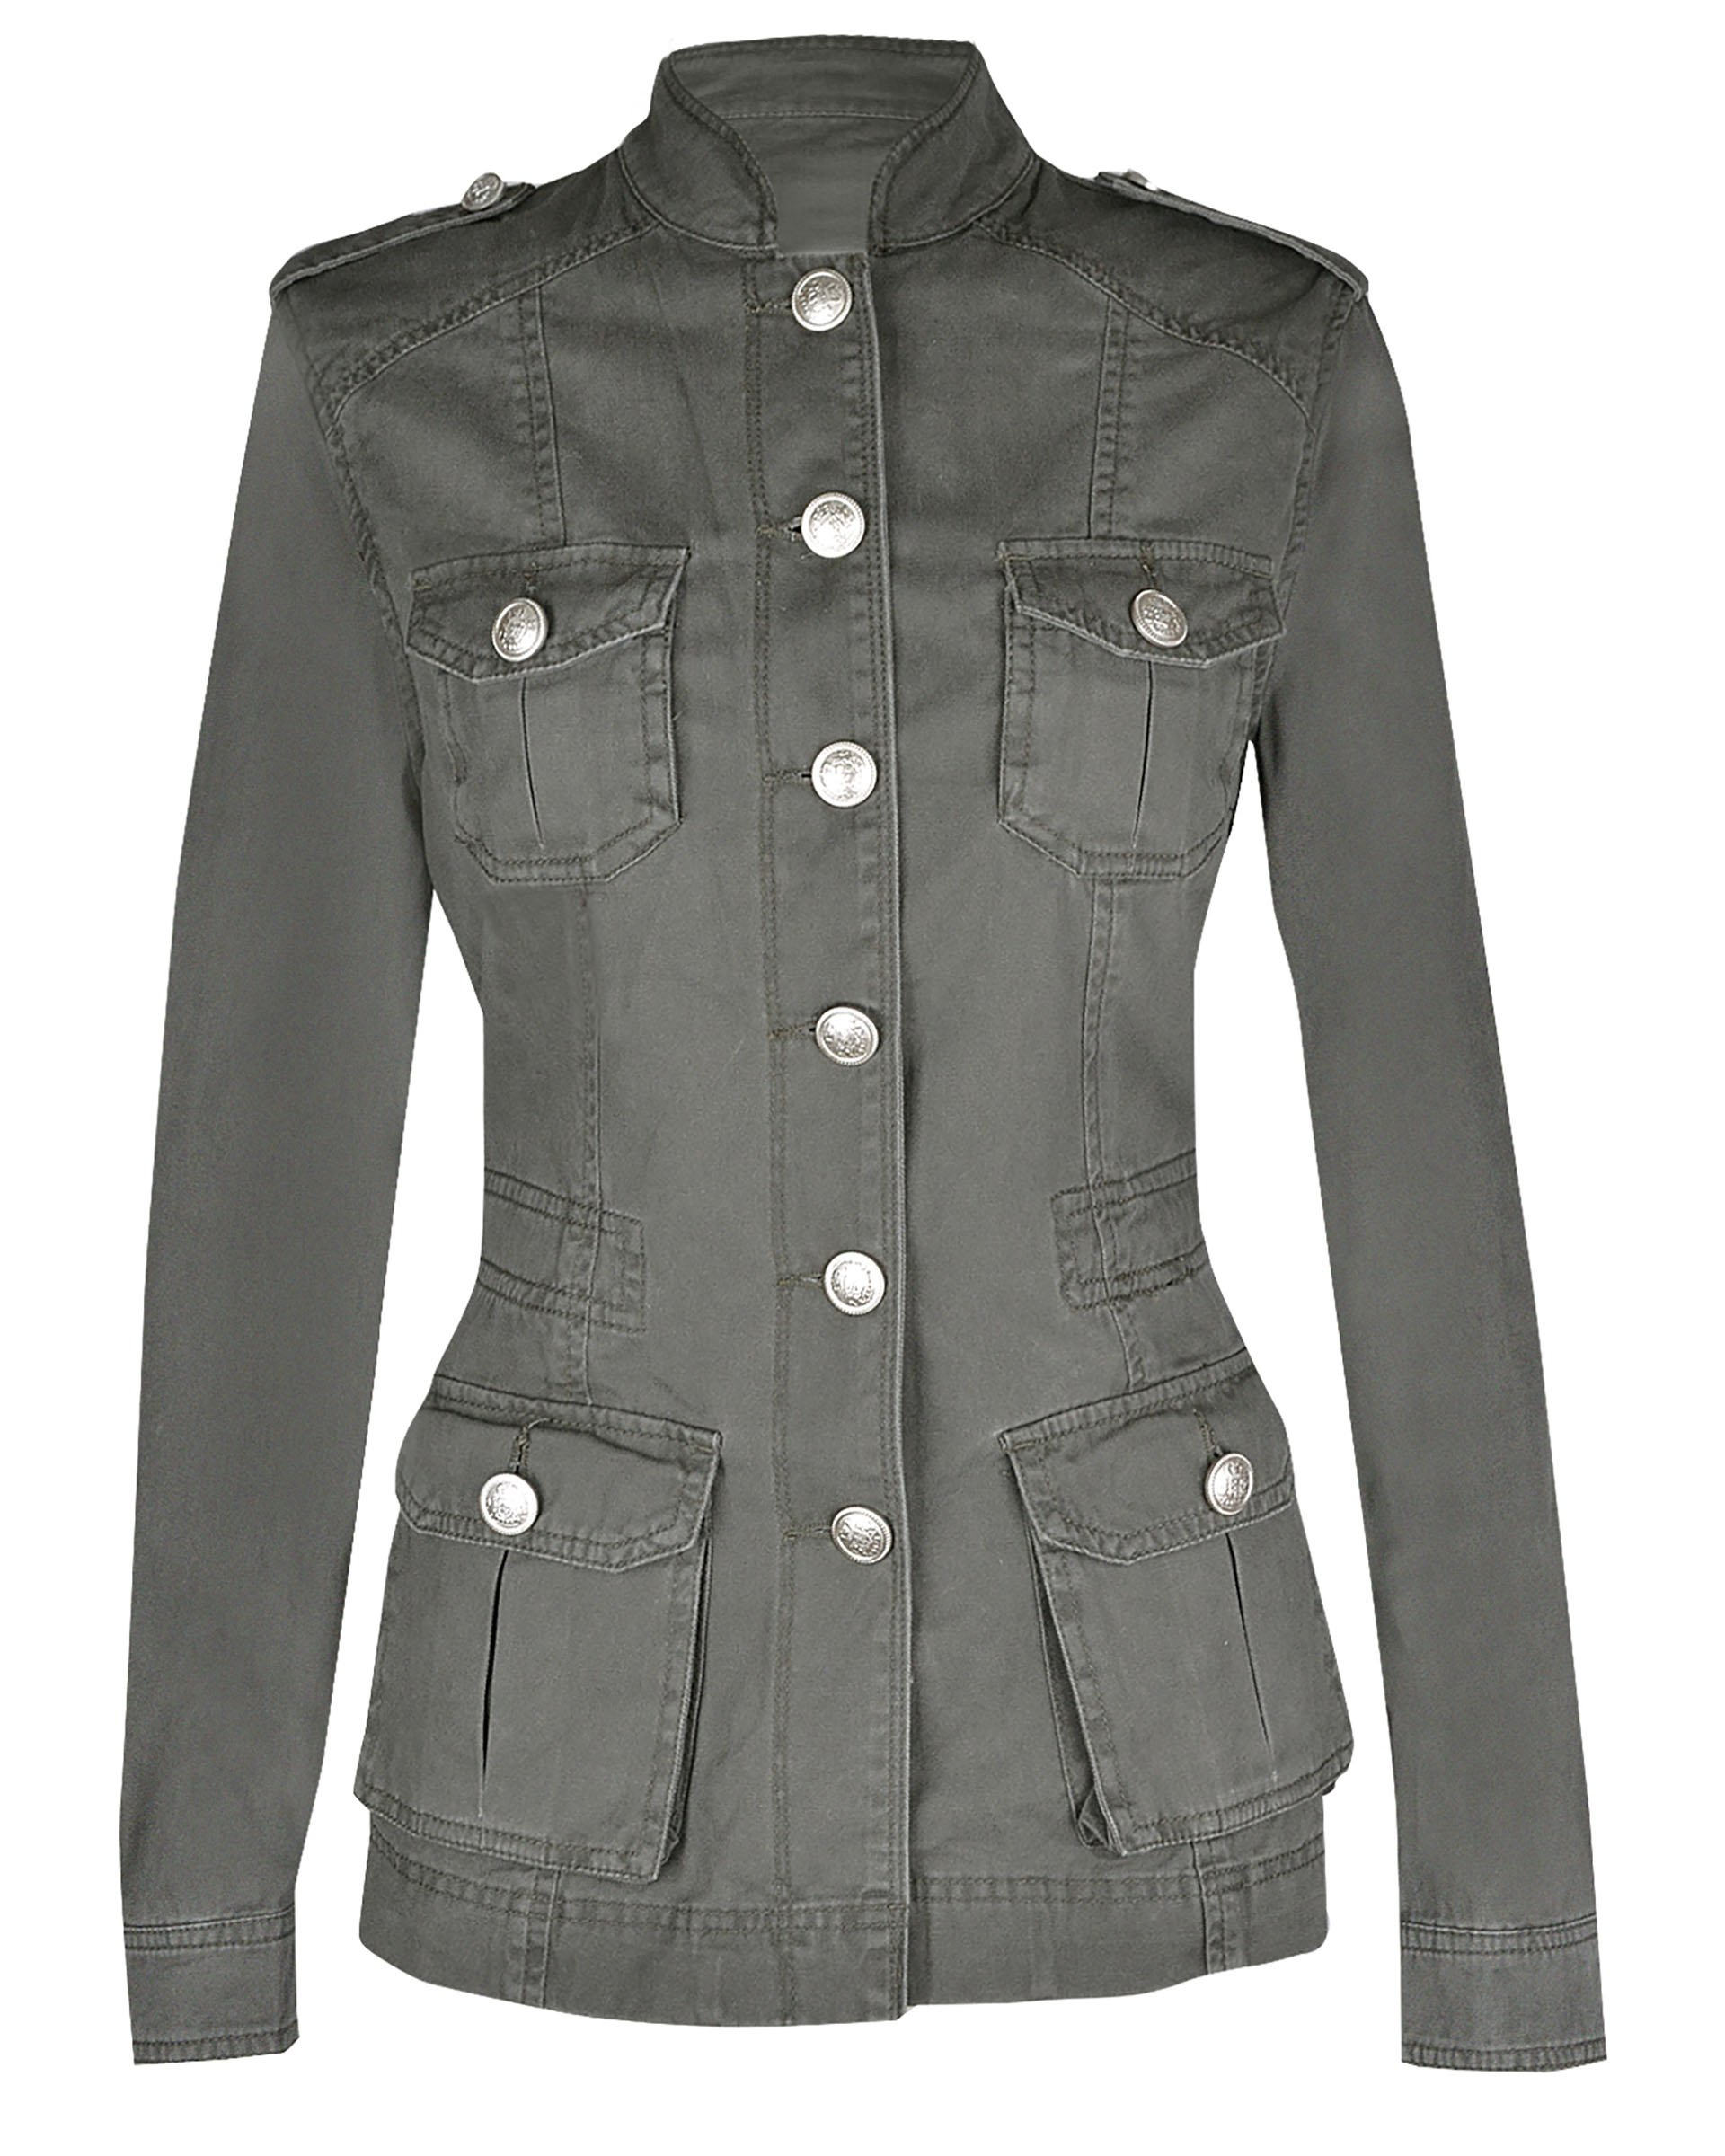 Ladies Military Style Summer Jacket (12(UK 16), Silver Button Khaki)